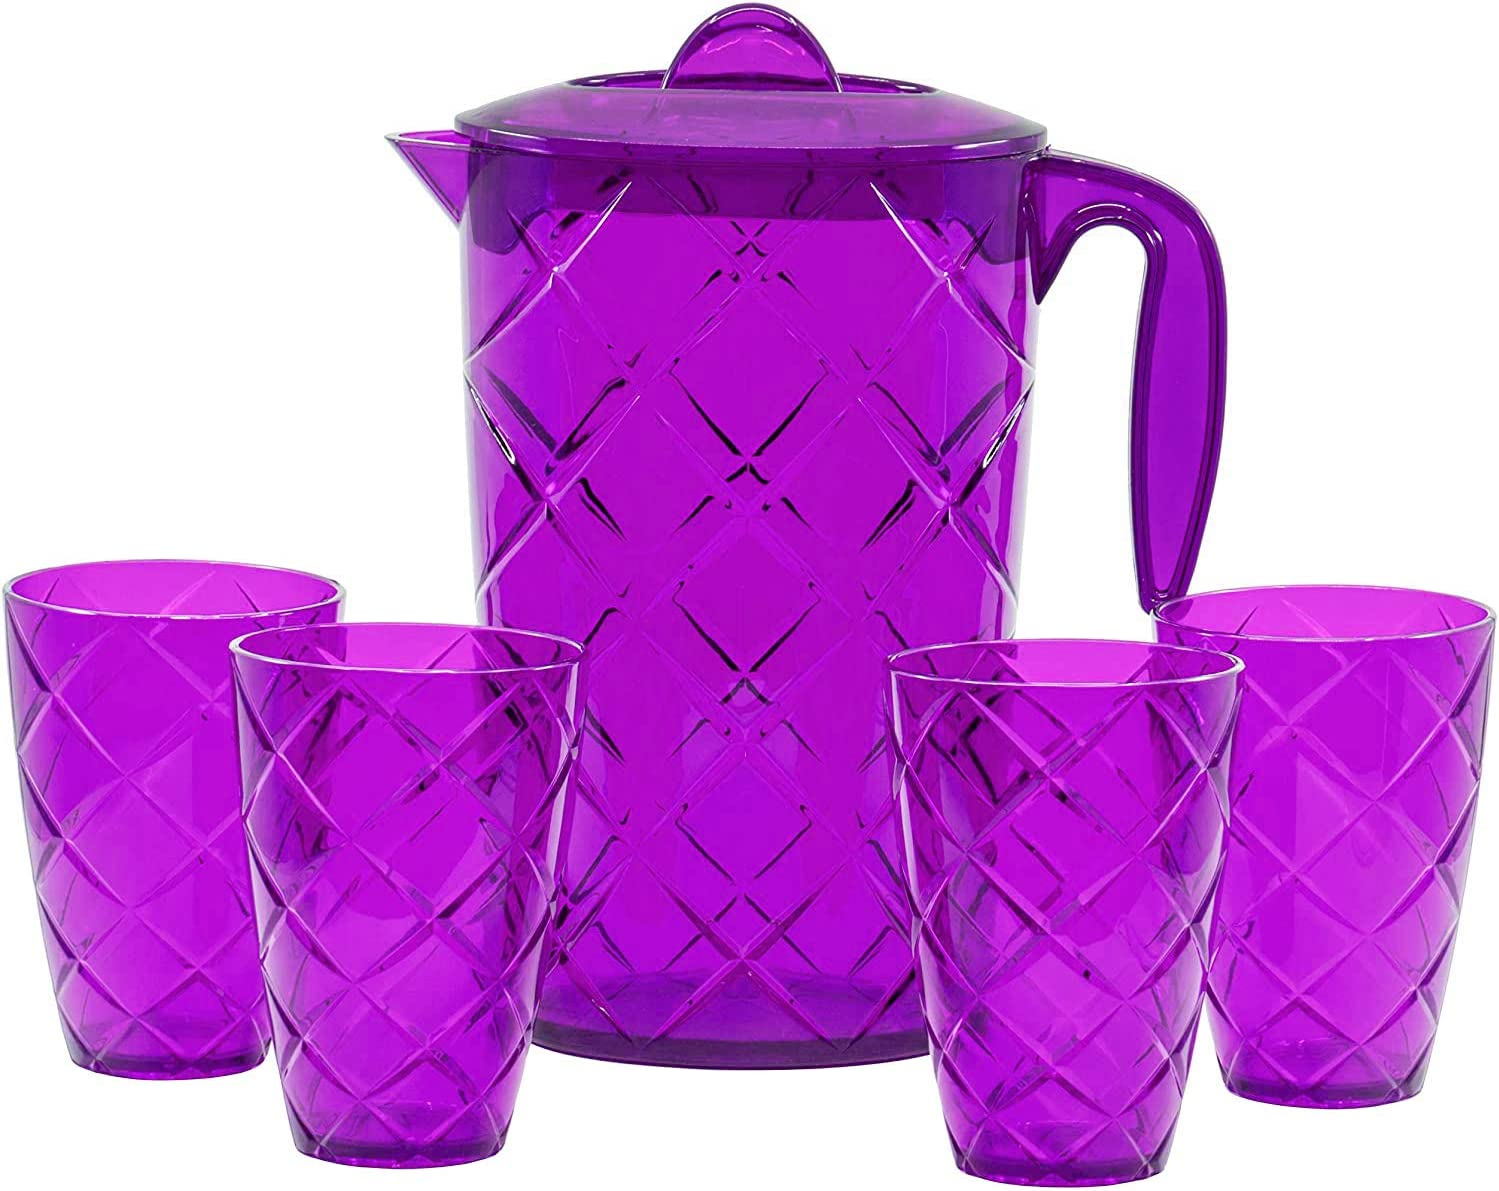 Red Co. Durable Plastic Pitcher with Lid and 4 Tumbler Glasses Drinkware Set, Drip Free Cold Water Jug Perfect for Iced Tea, Sangria, Lemonade — 64 fl oz. pitcher with 12 fl oz. glasses — Purple